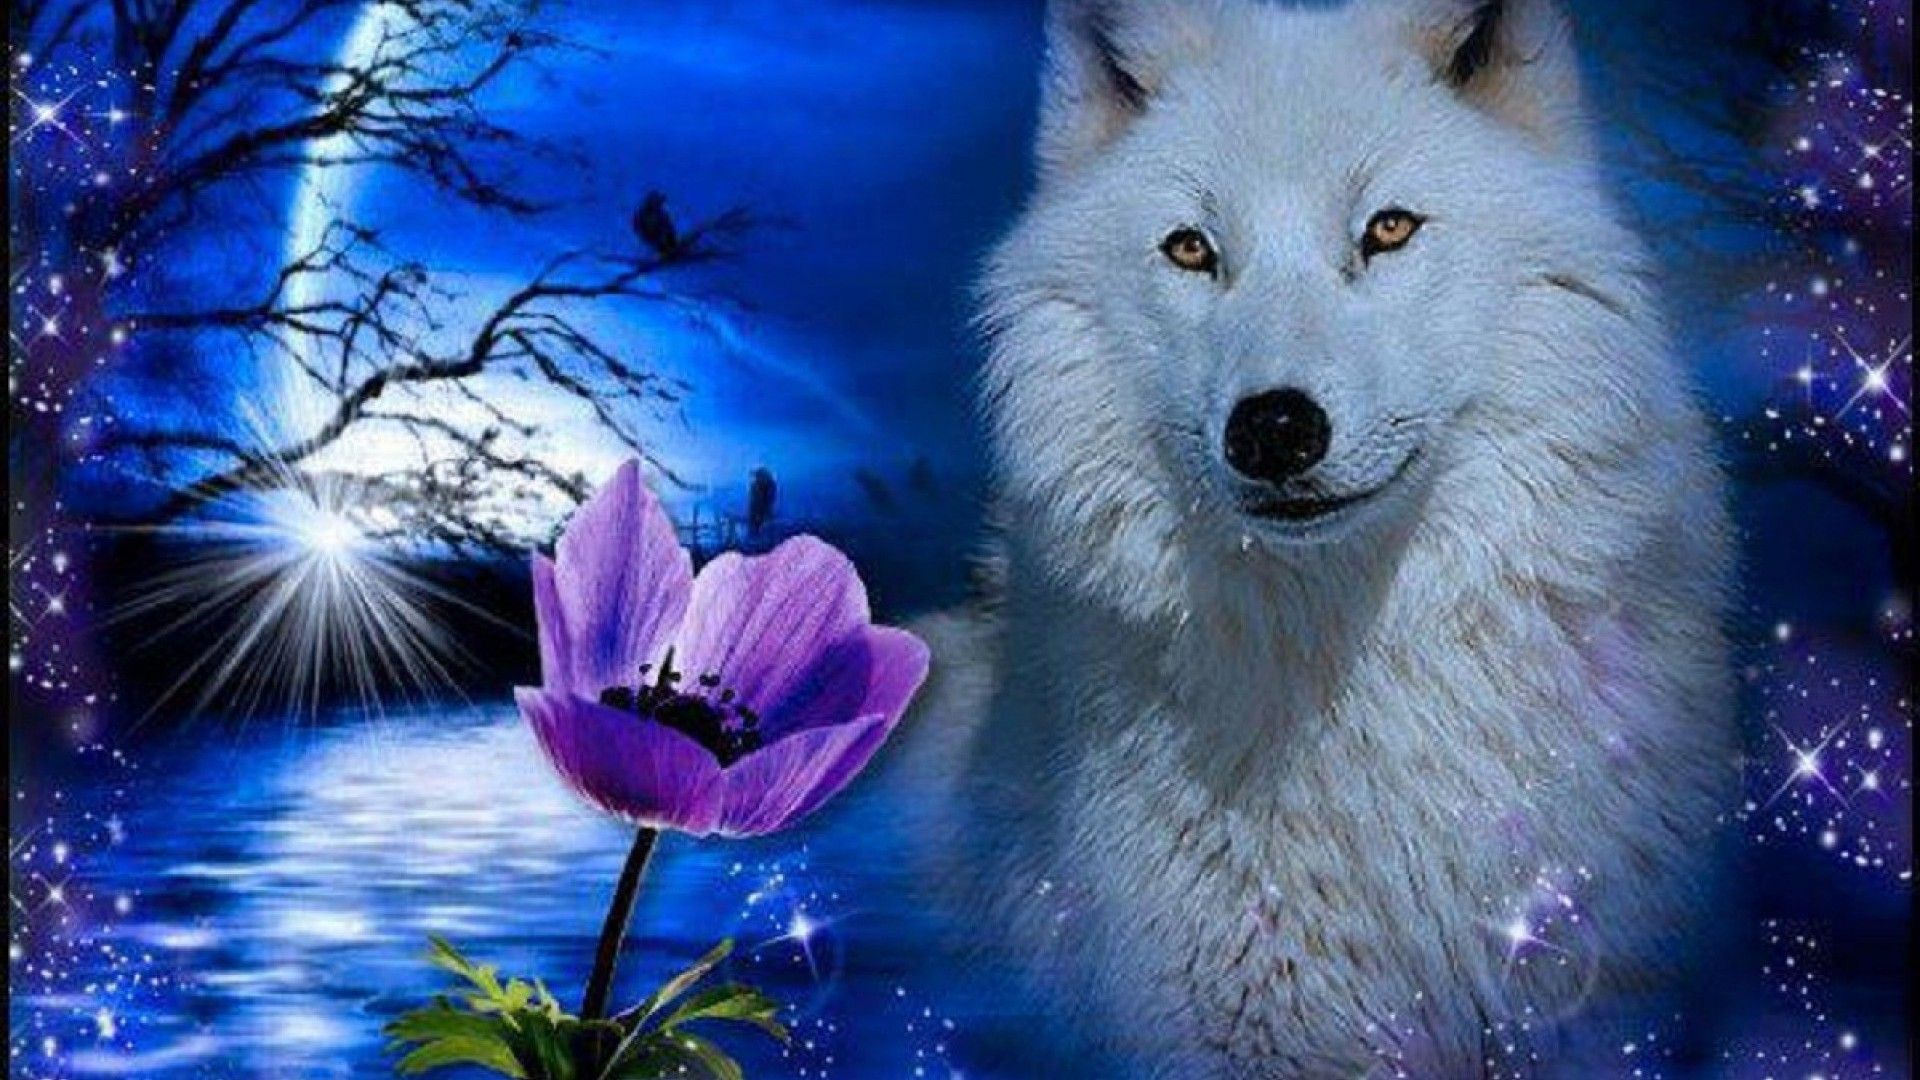 Blue Moon Wolf Wallpapers High Quality Resolution with ...